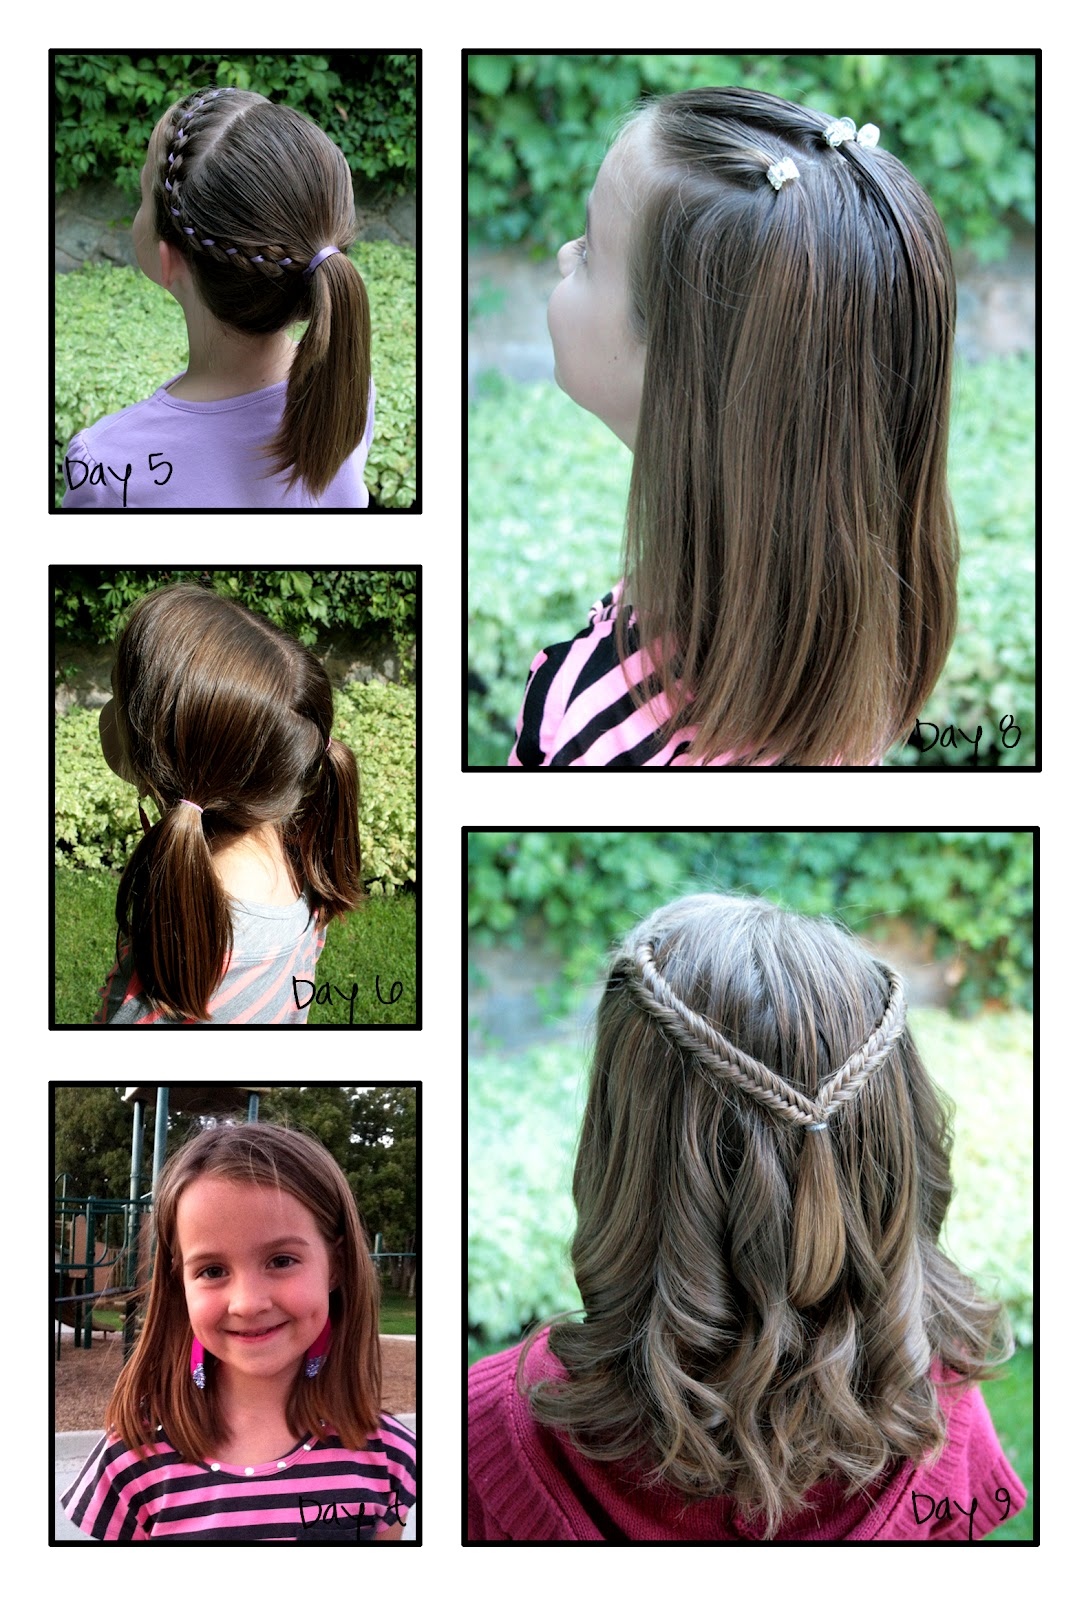 Magnificent 1000 Images About Hair Styles On Pinterest 10 Years Lace Braid Short Hairstyles Gunalazisus